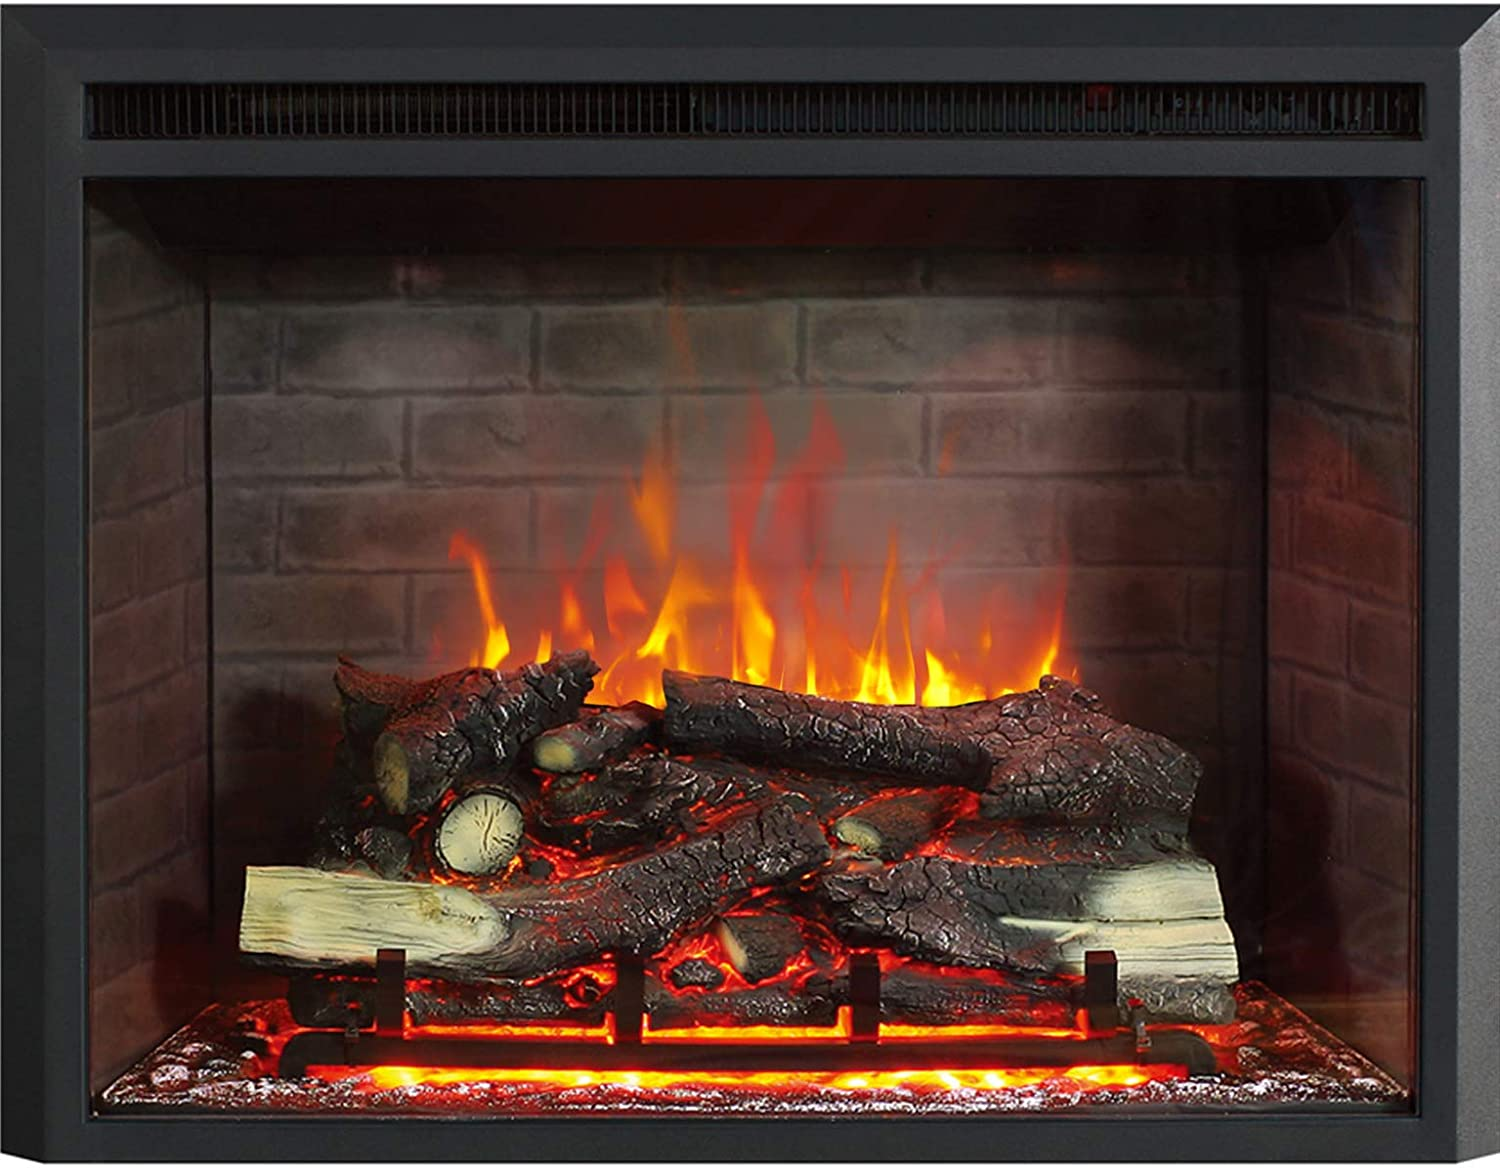 750/1500W RICHFLAME Gavin 26 Inches Electric Fireplace Insert with ...